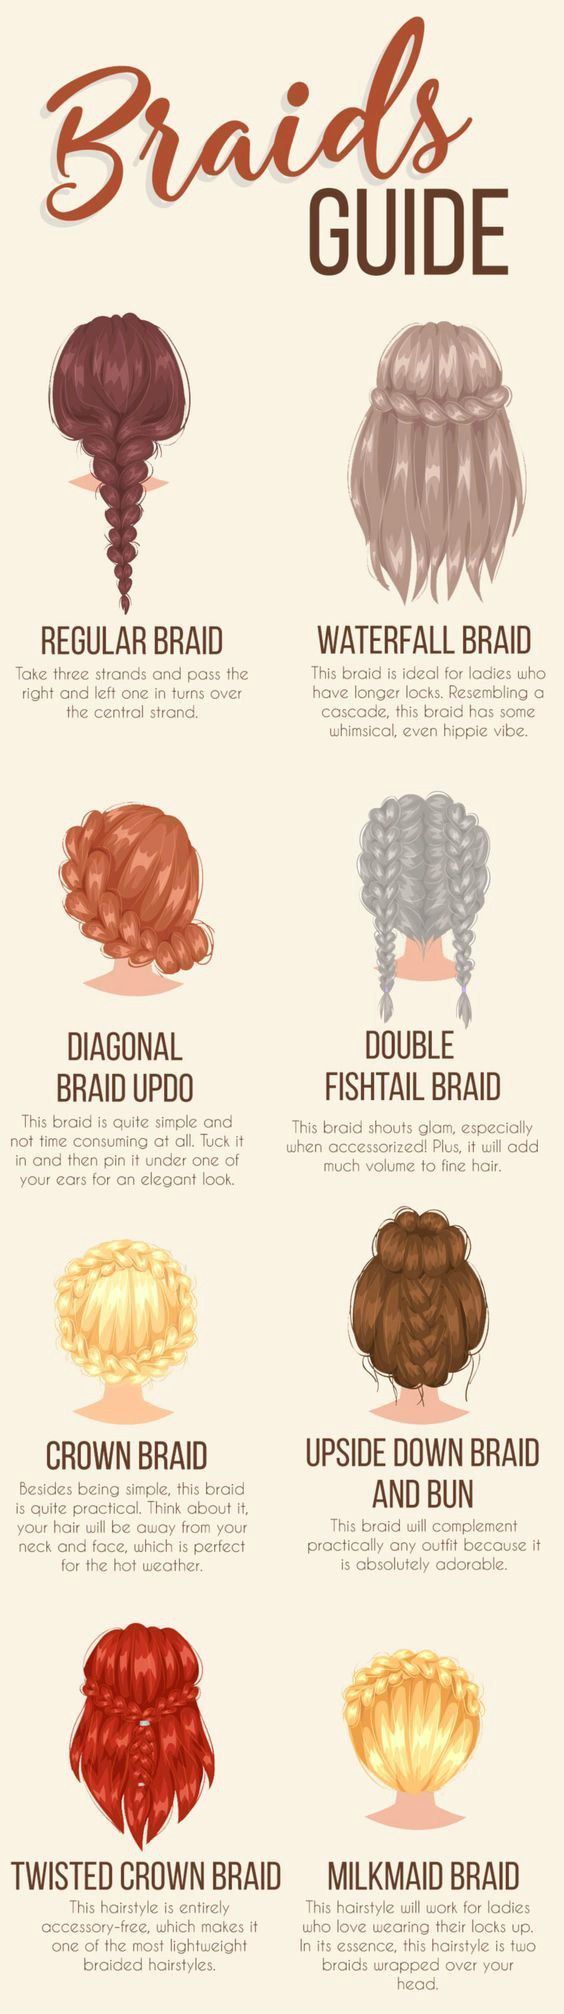 10 Braids Beautyful Quick & Easy Hairstyles for Girls #girlhairstyles